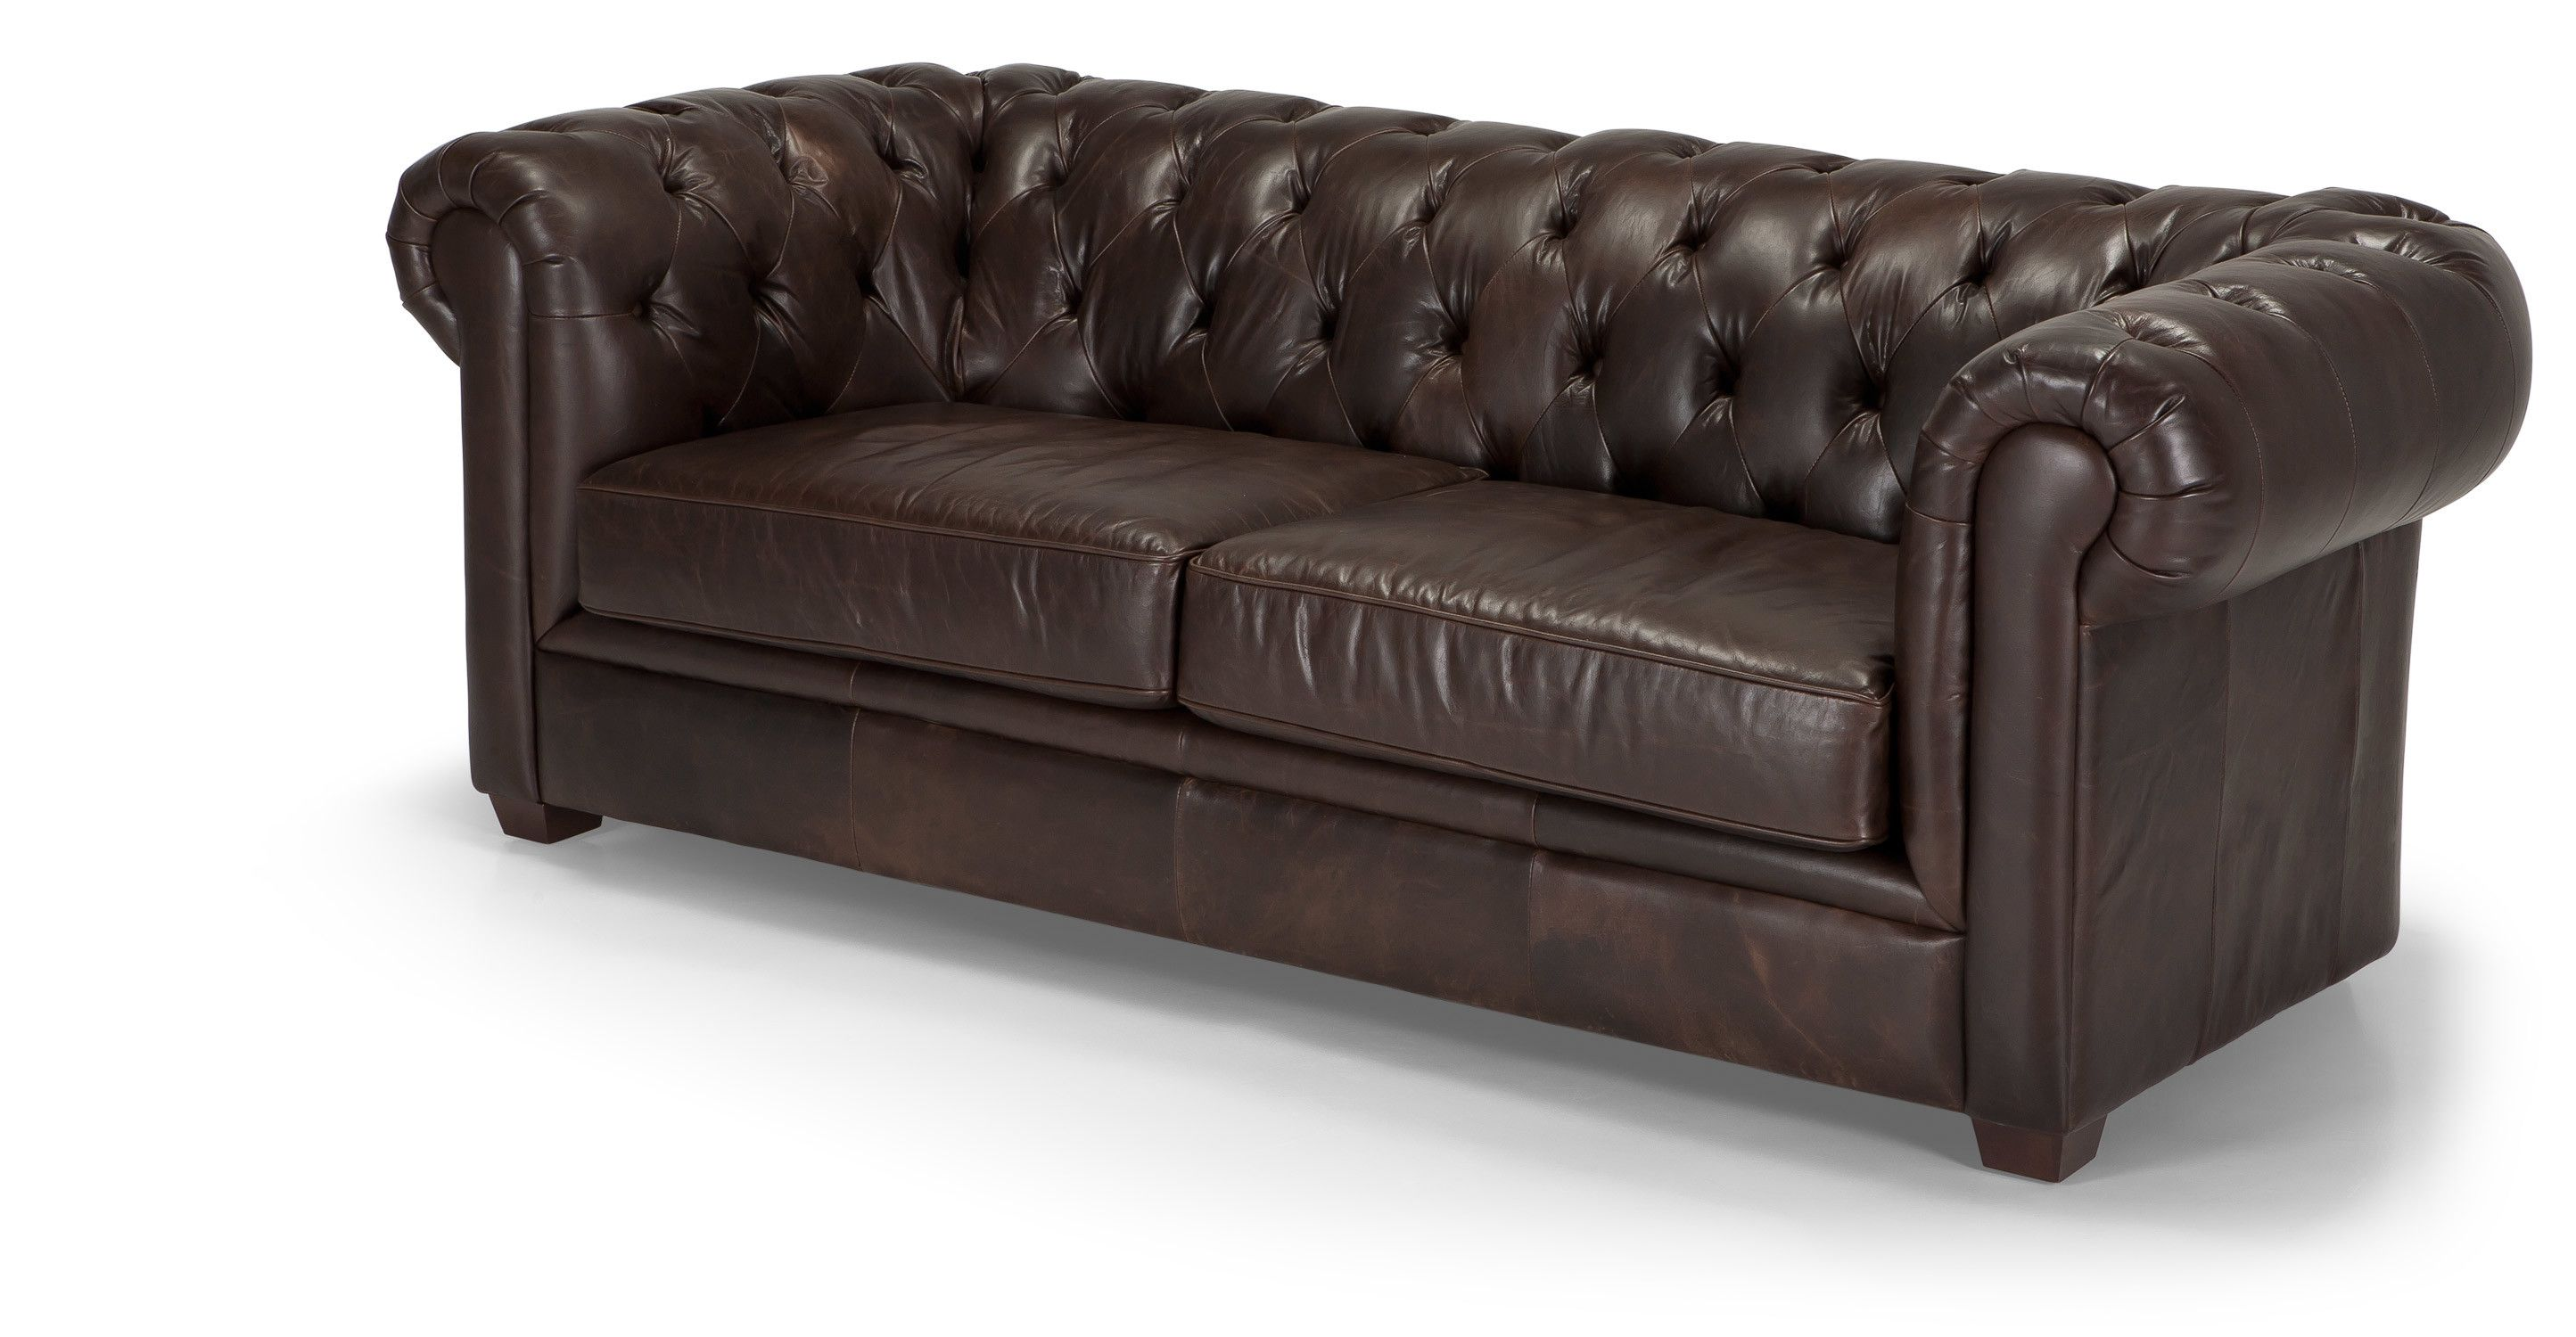 Mayson Chesterfield 3 Seater Sofa in antique brown premium leather